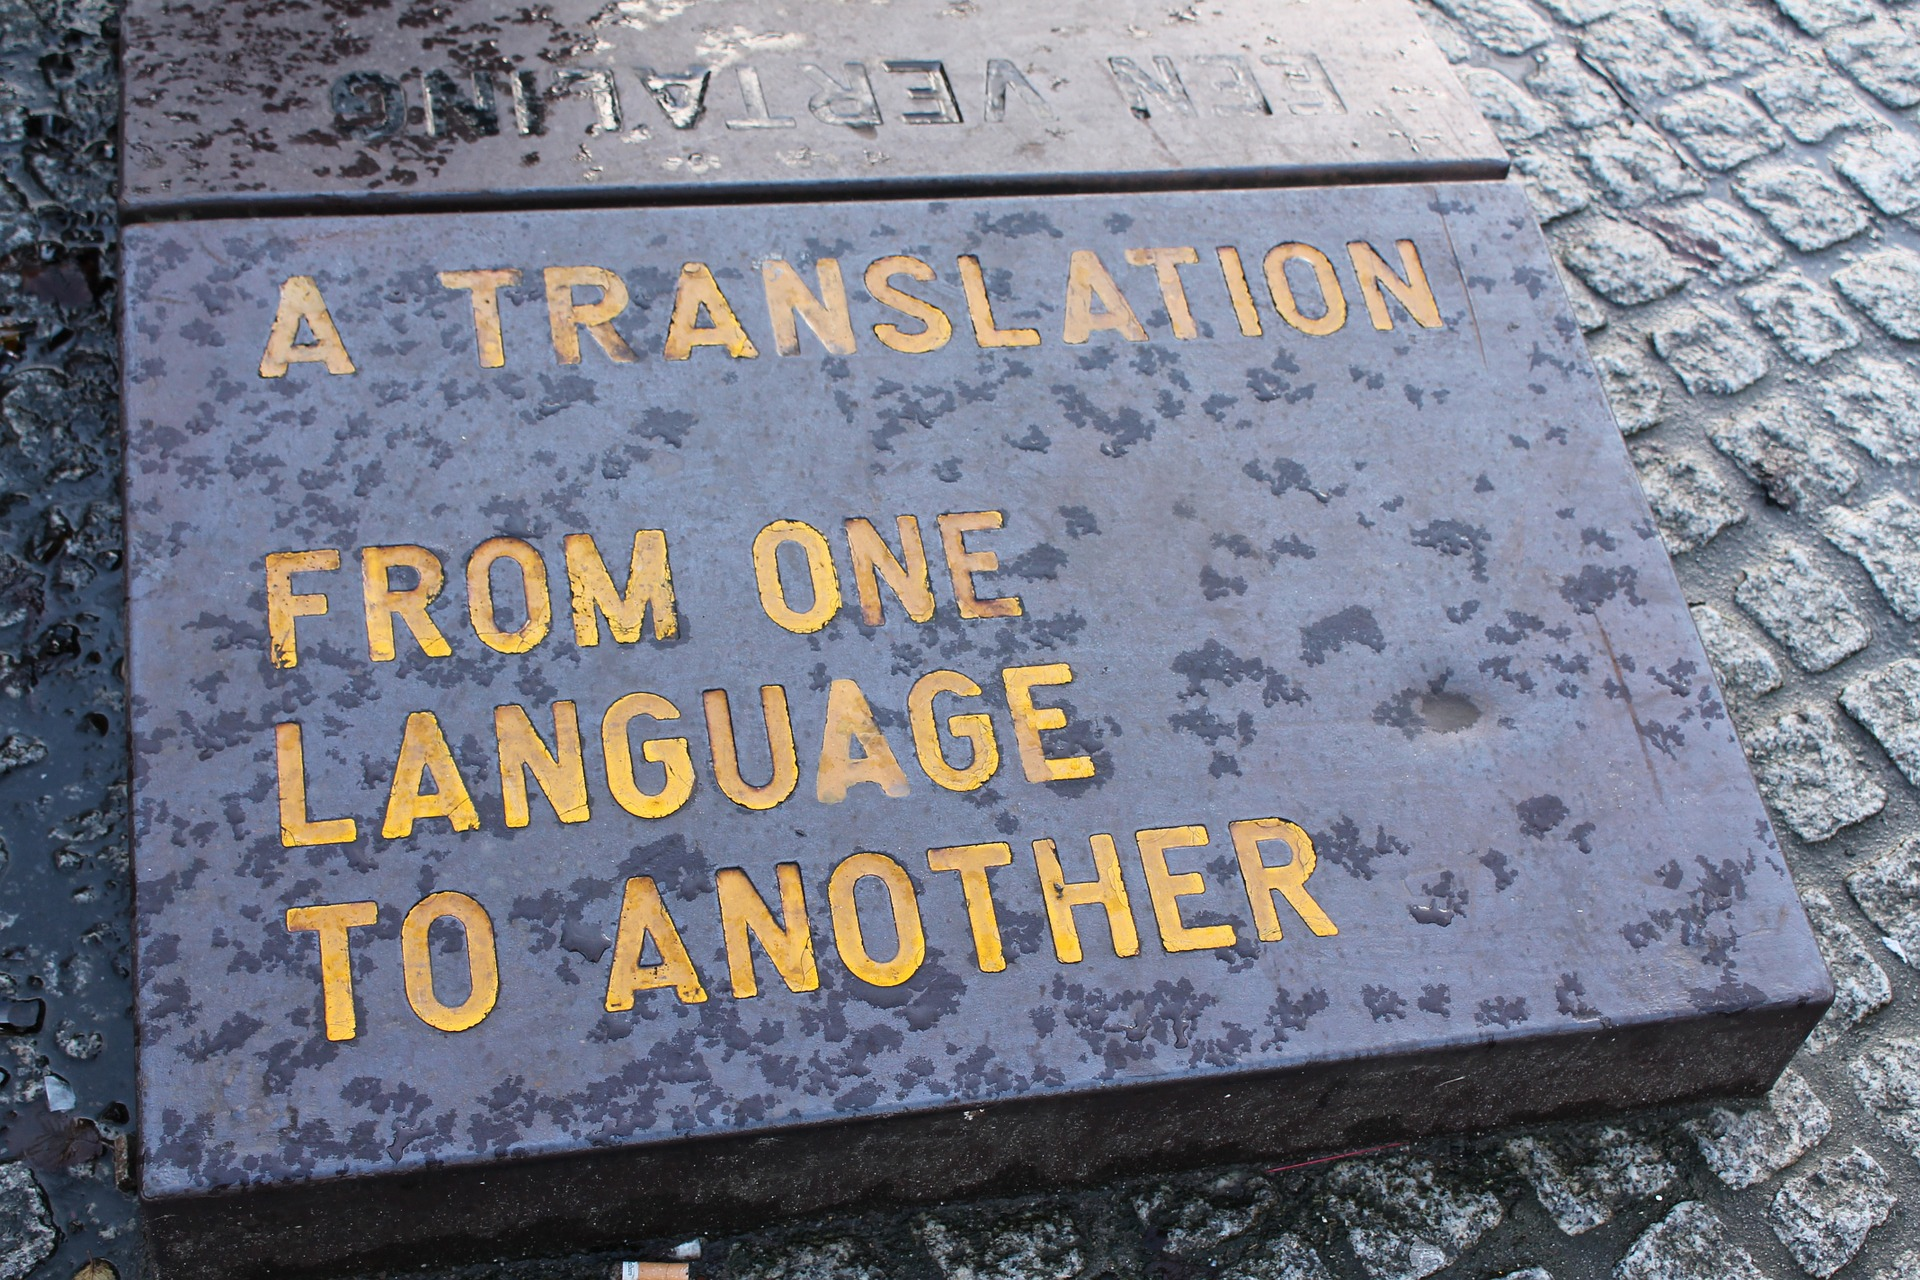 Translate from English to any language